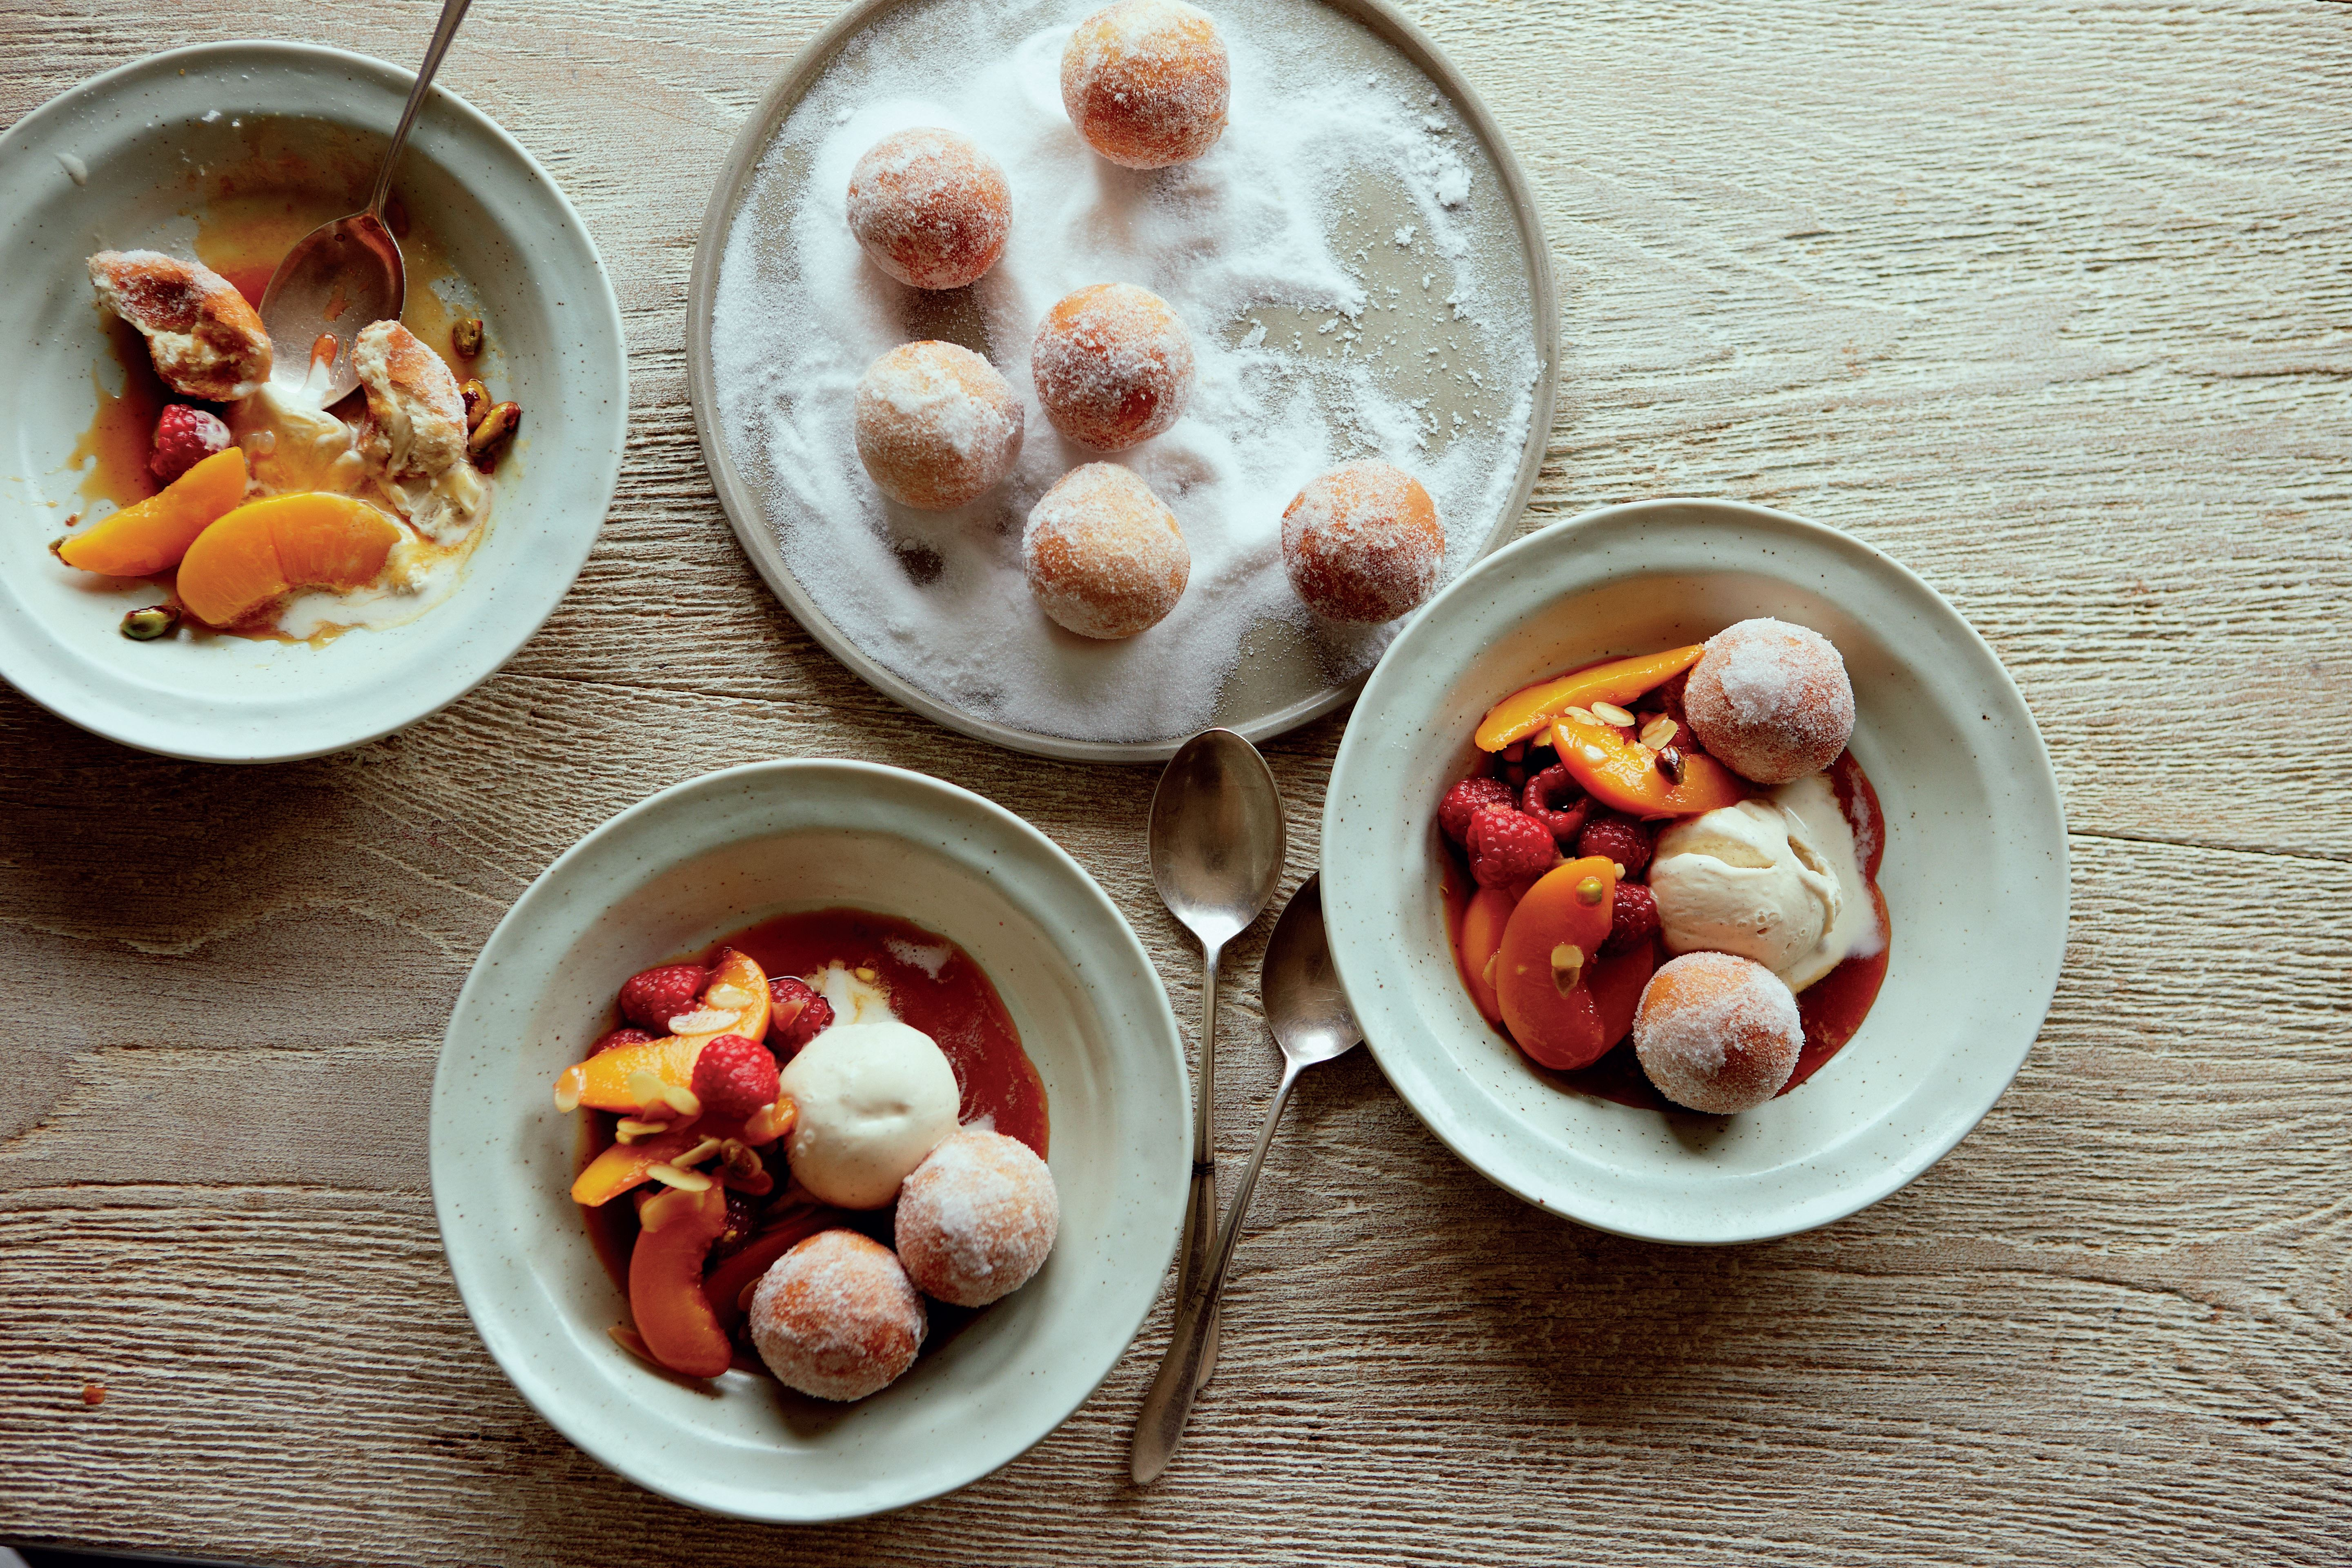 Peach melba with sugar-roasted doughnuts